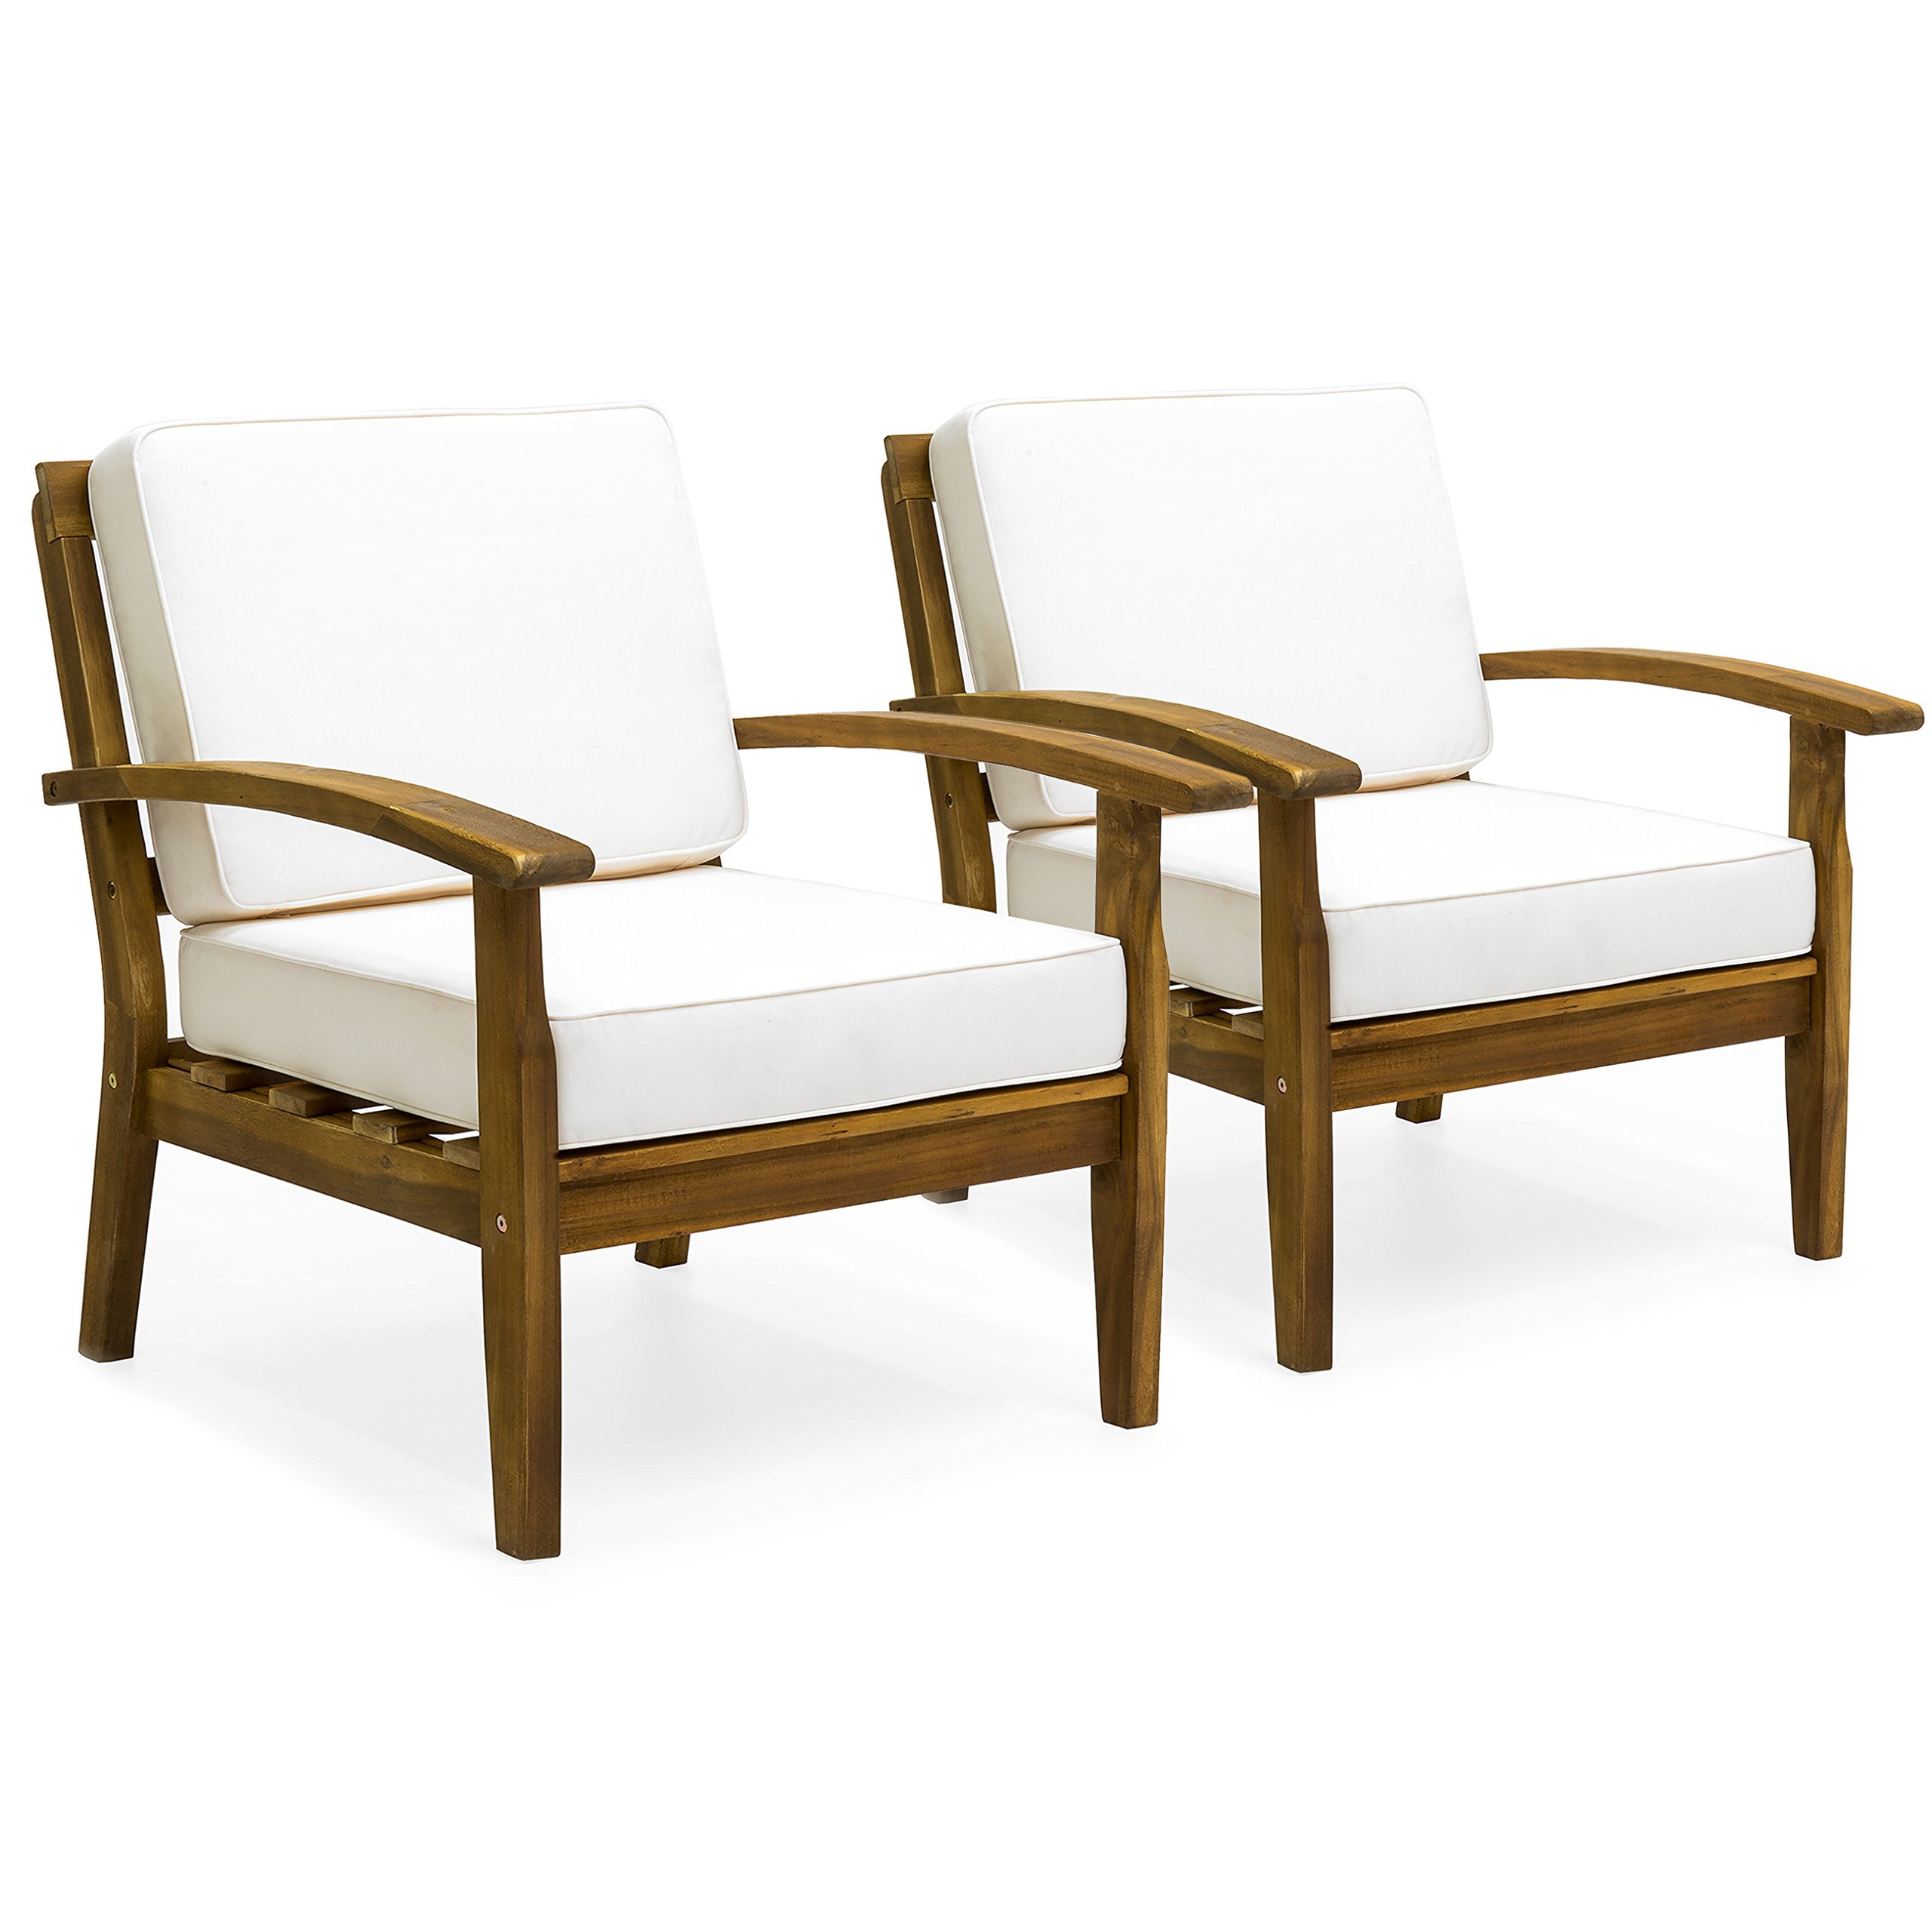 Best Choice Products Set of 2 Outdoor Acacia Wood Club Chairs with Cushions, Cream by Best Choice Products